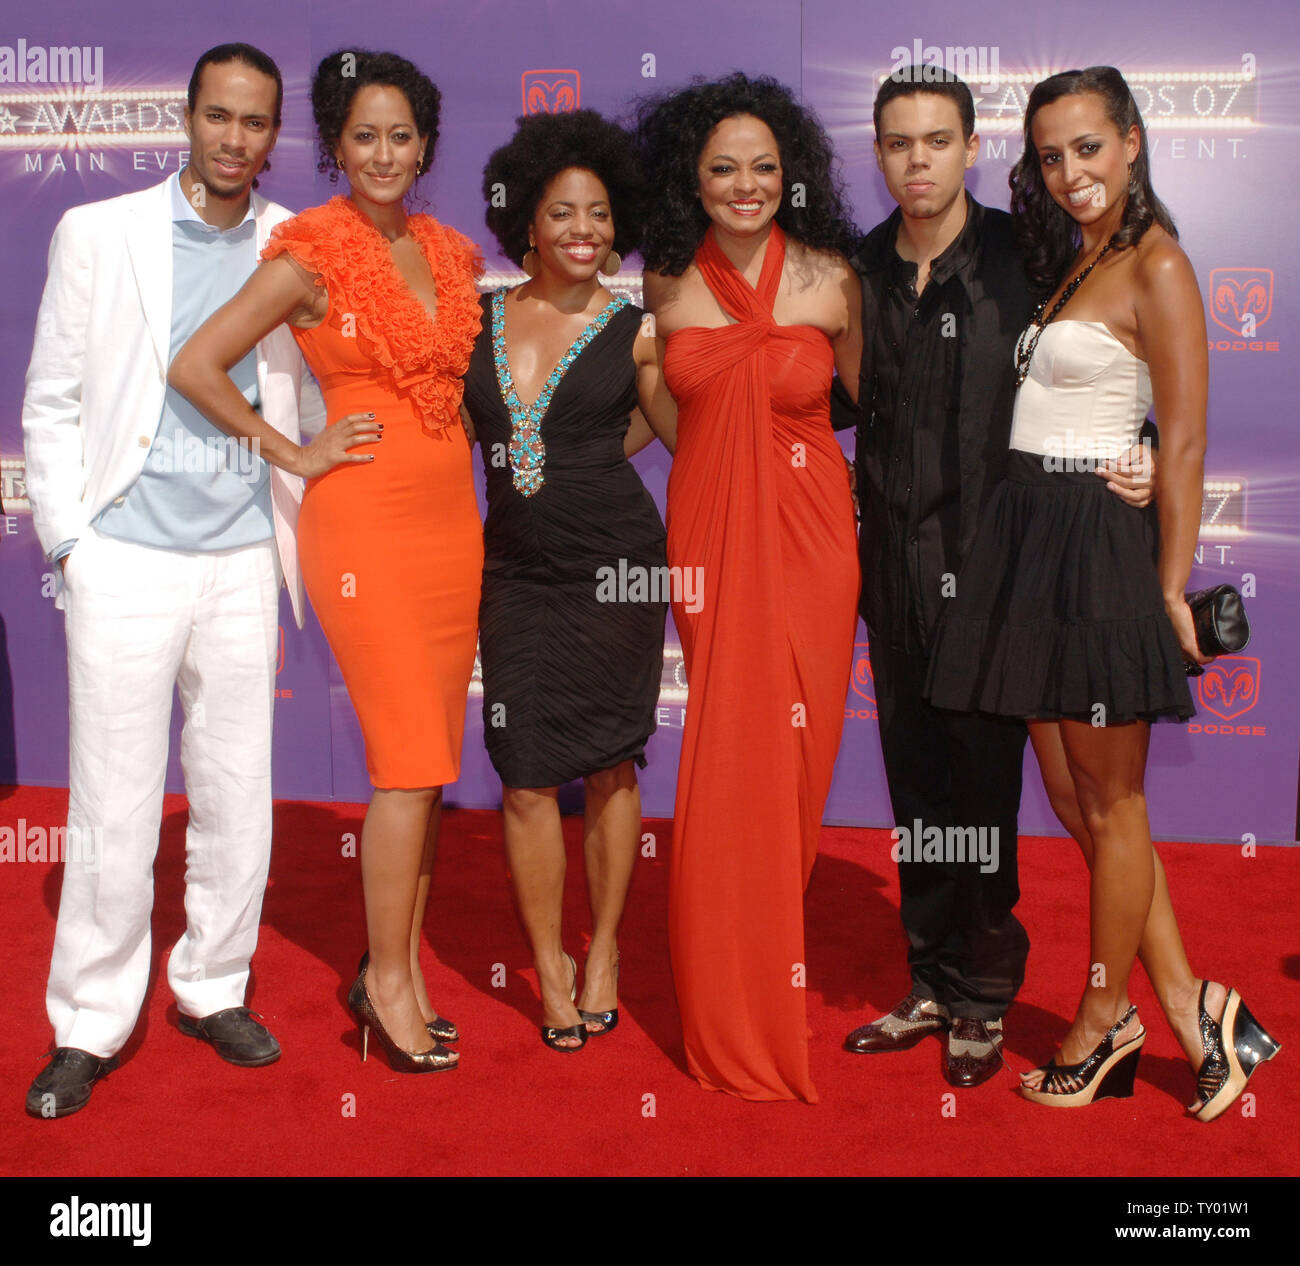 singer and actress diana ross 4th l arrives with her children ross arne naess actress tracee https www alamy com singer and actress diana ross 4th l arrives with her children ross arne naess actress tracee ellis ross rhonda ross kendrick ross evan ross and chudney ross at the 2007 bet awards in los angeles on june 26 2007 diana ross was honored with the lifetime achievement award upi photojim ruymen image257542349 html